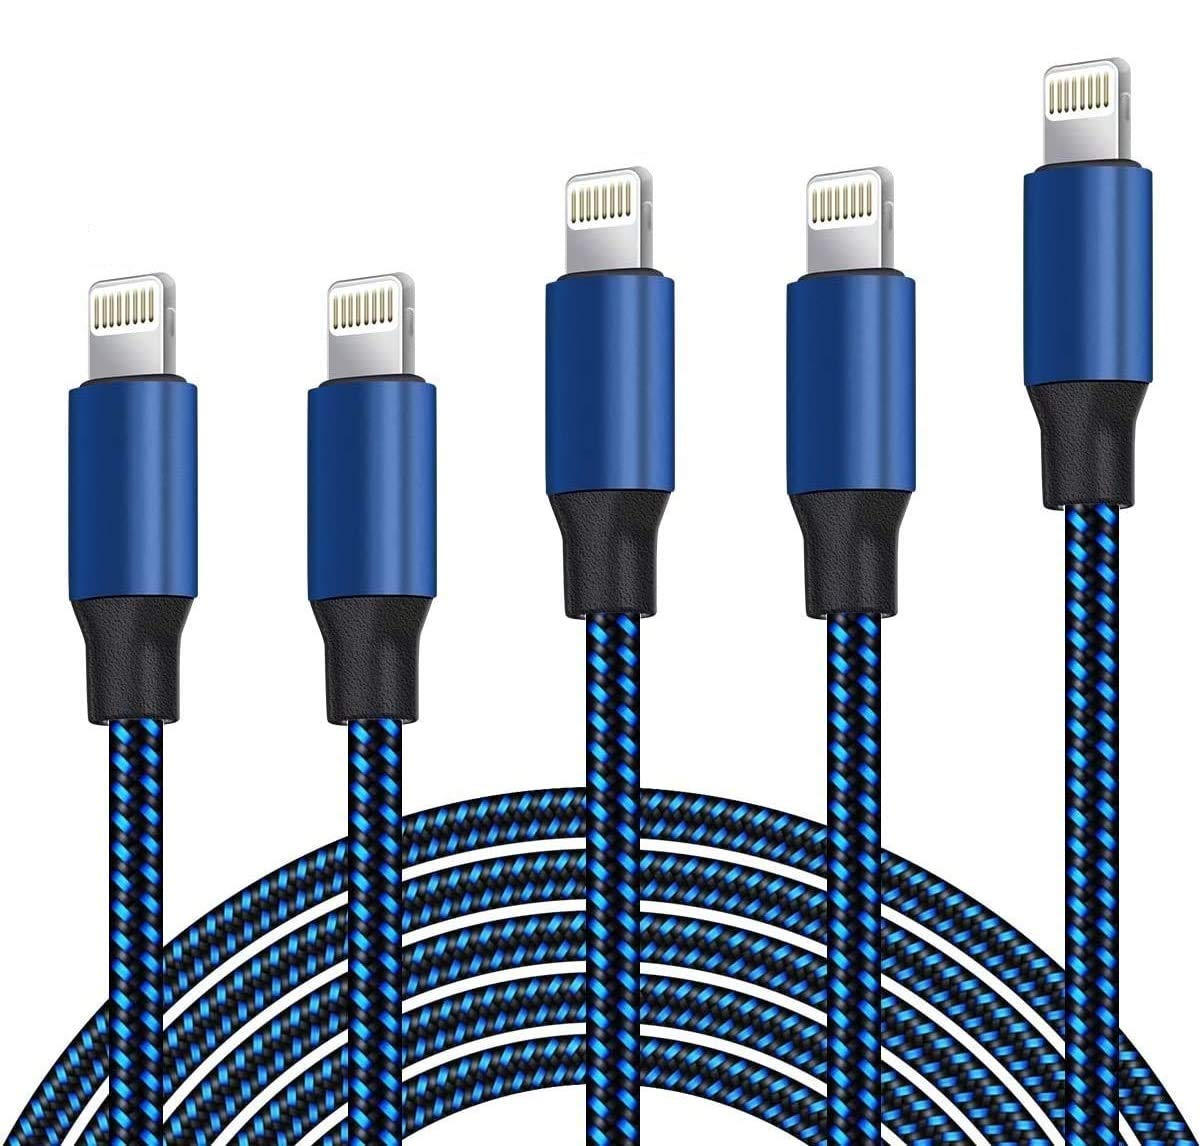 DNLM iPhone Charger Cable, 5Pack (3ft 3ft 6ft 6ft 10ft) Apple MFi Certified Braided Nylon Fast Charger Cable Compatible iPhone Max XS XR 8 Plus 7 Plus 6s 5s 5c Air iPad Mini iPod (Black & Blue)